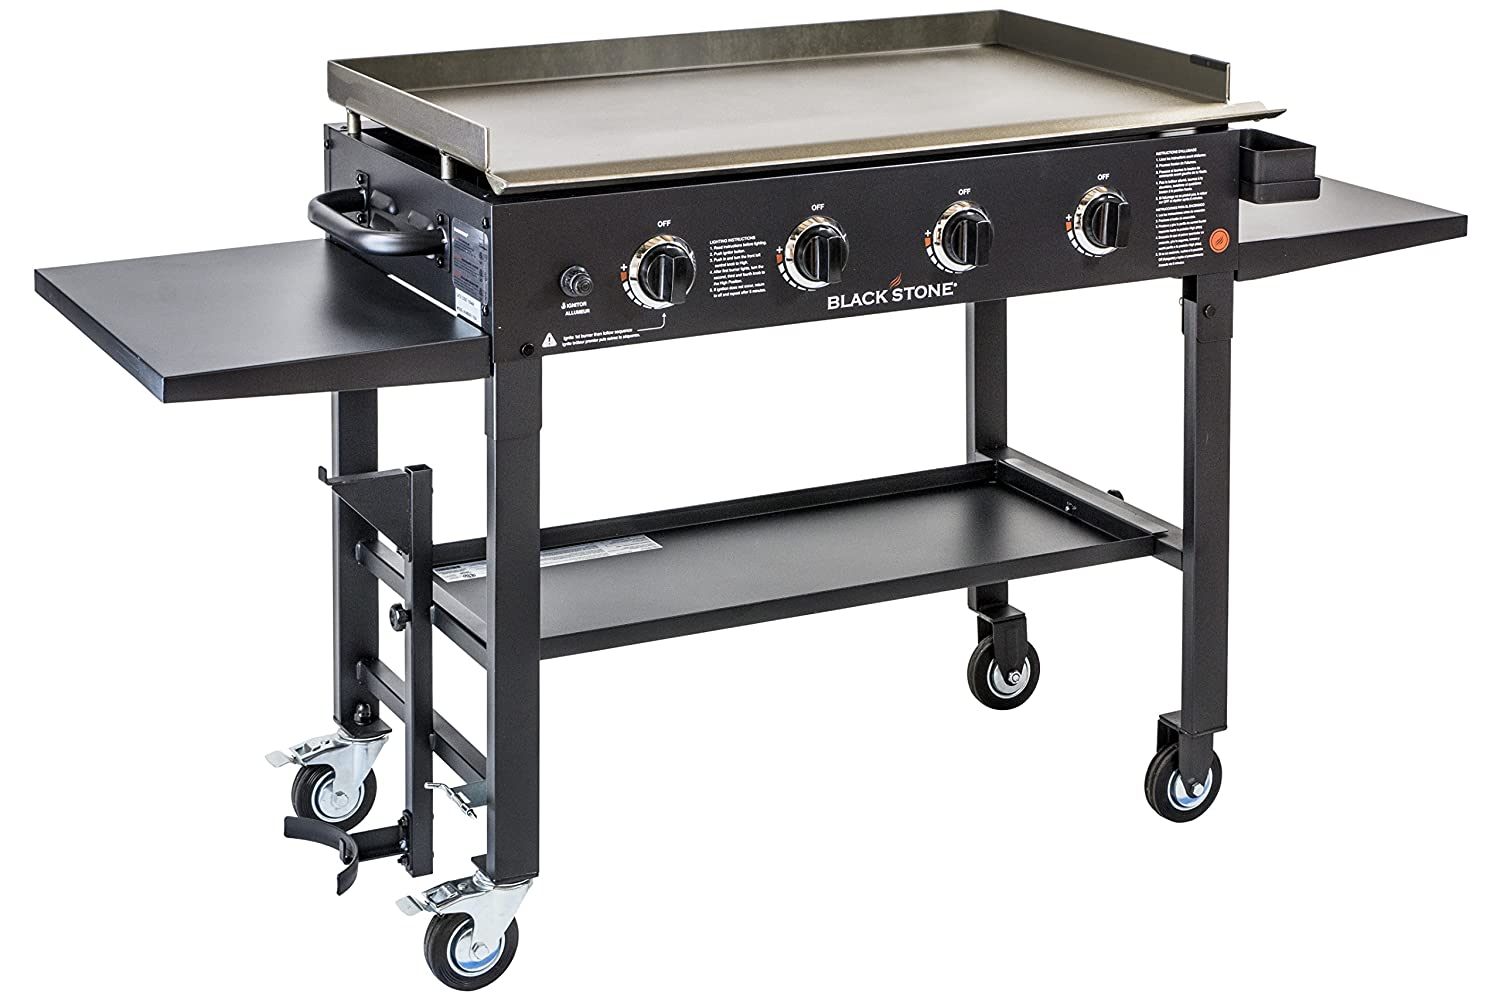 blackstone 36 inch outdoor flat top gas grill griddle station 4burner propane - Best Gas Grills